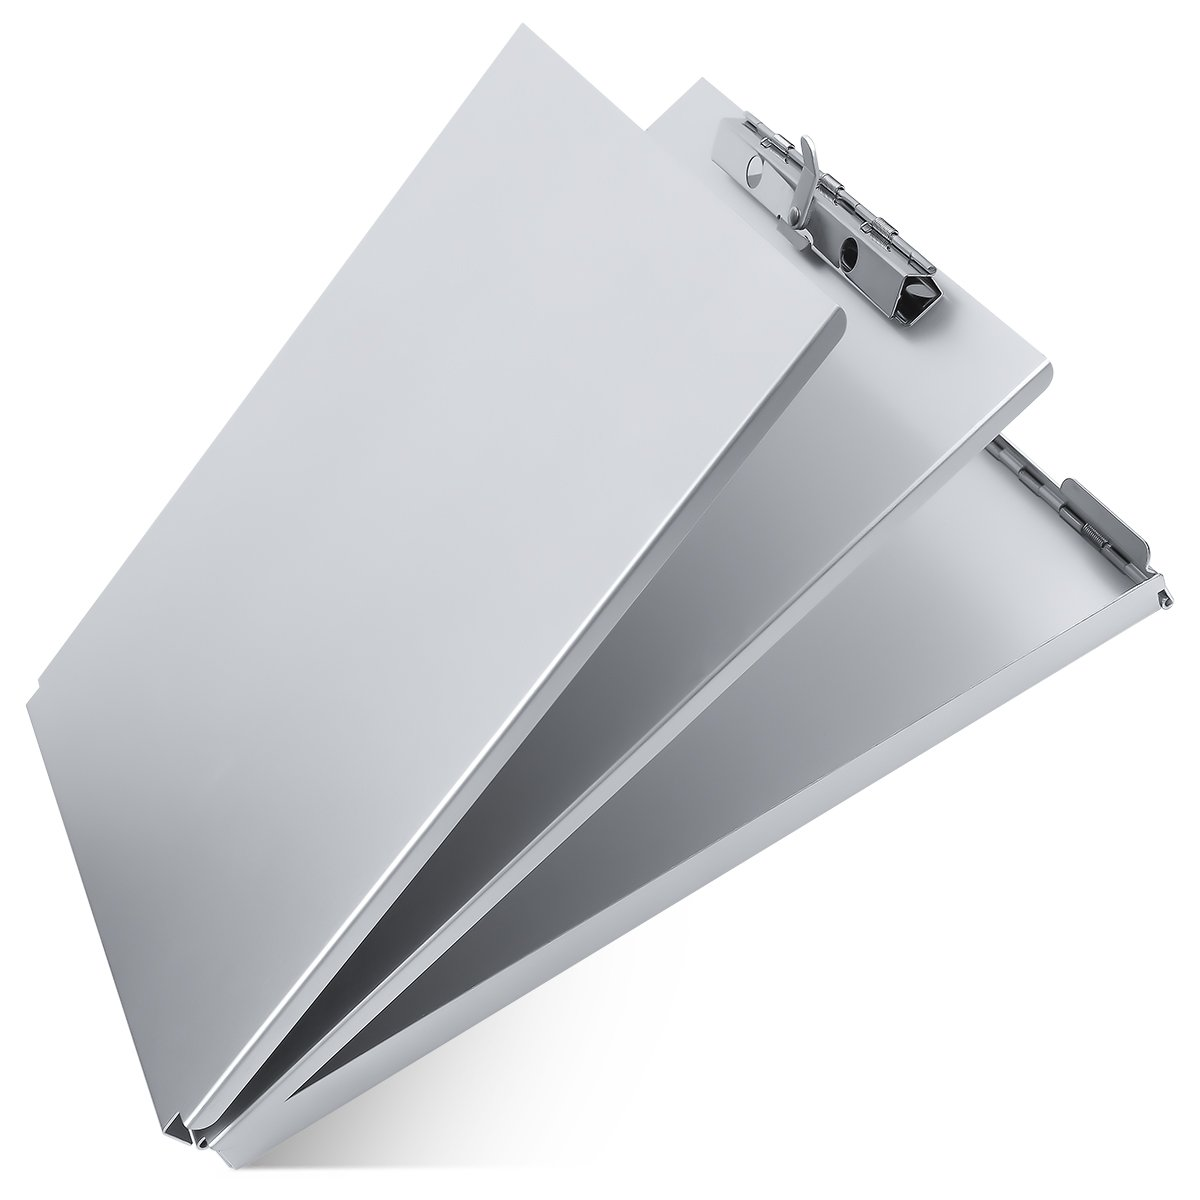 Aluminum Clipboard Metal with Storage Form Holder Aluminum Metal Binder with High Capacity Clip Posse Box Heavy Duty Made - Letter Size Clipboard for Office Business Professionals Stationery Items